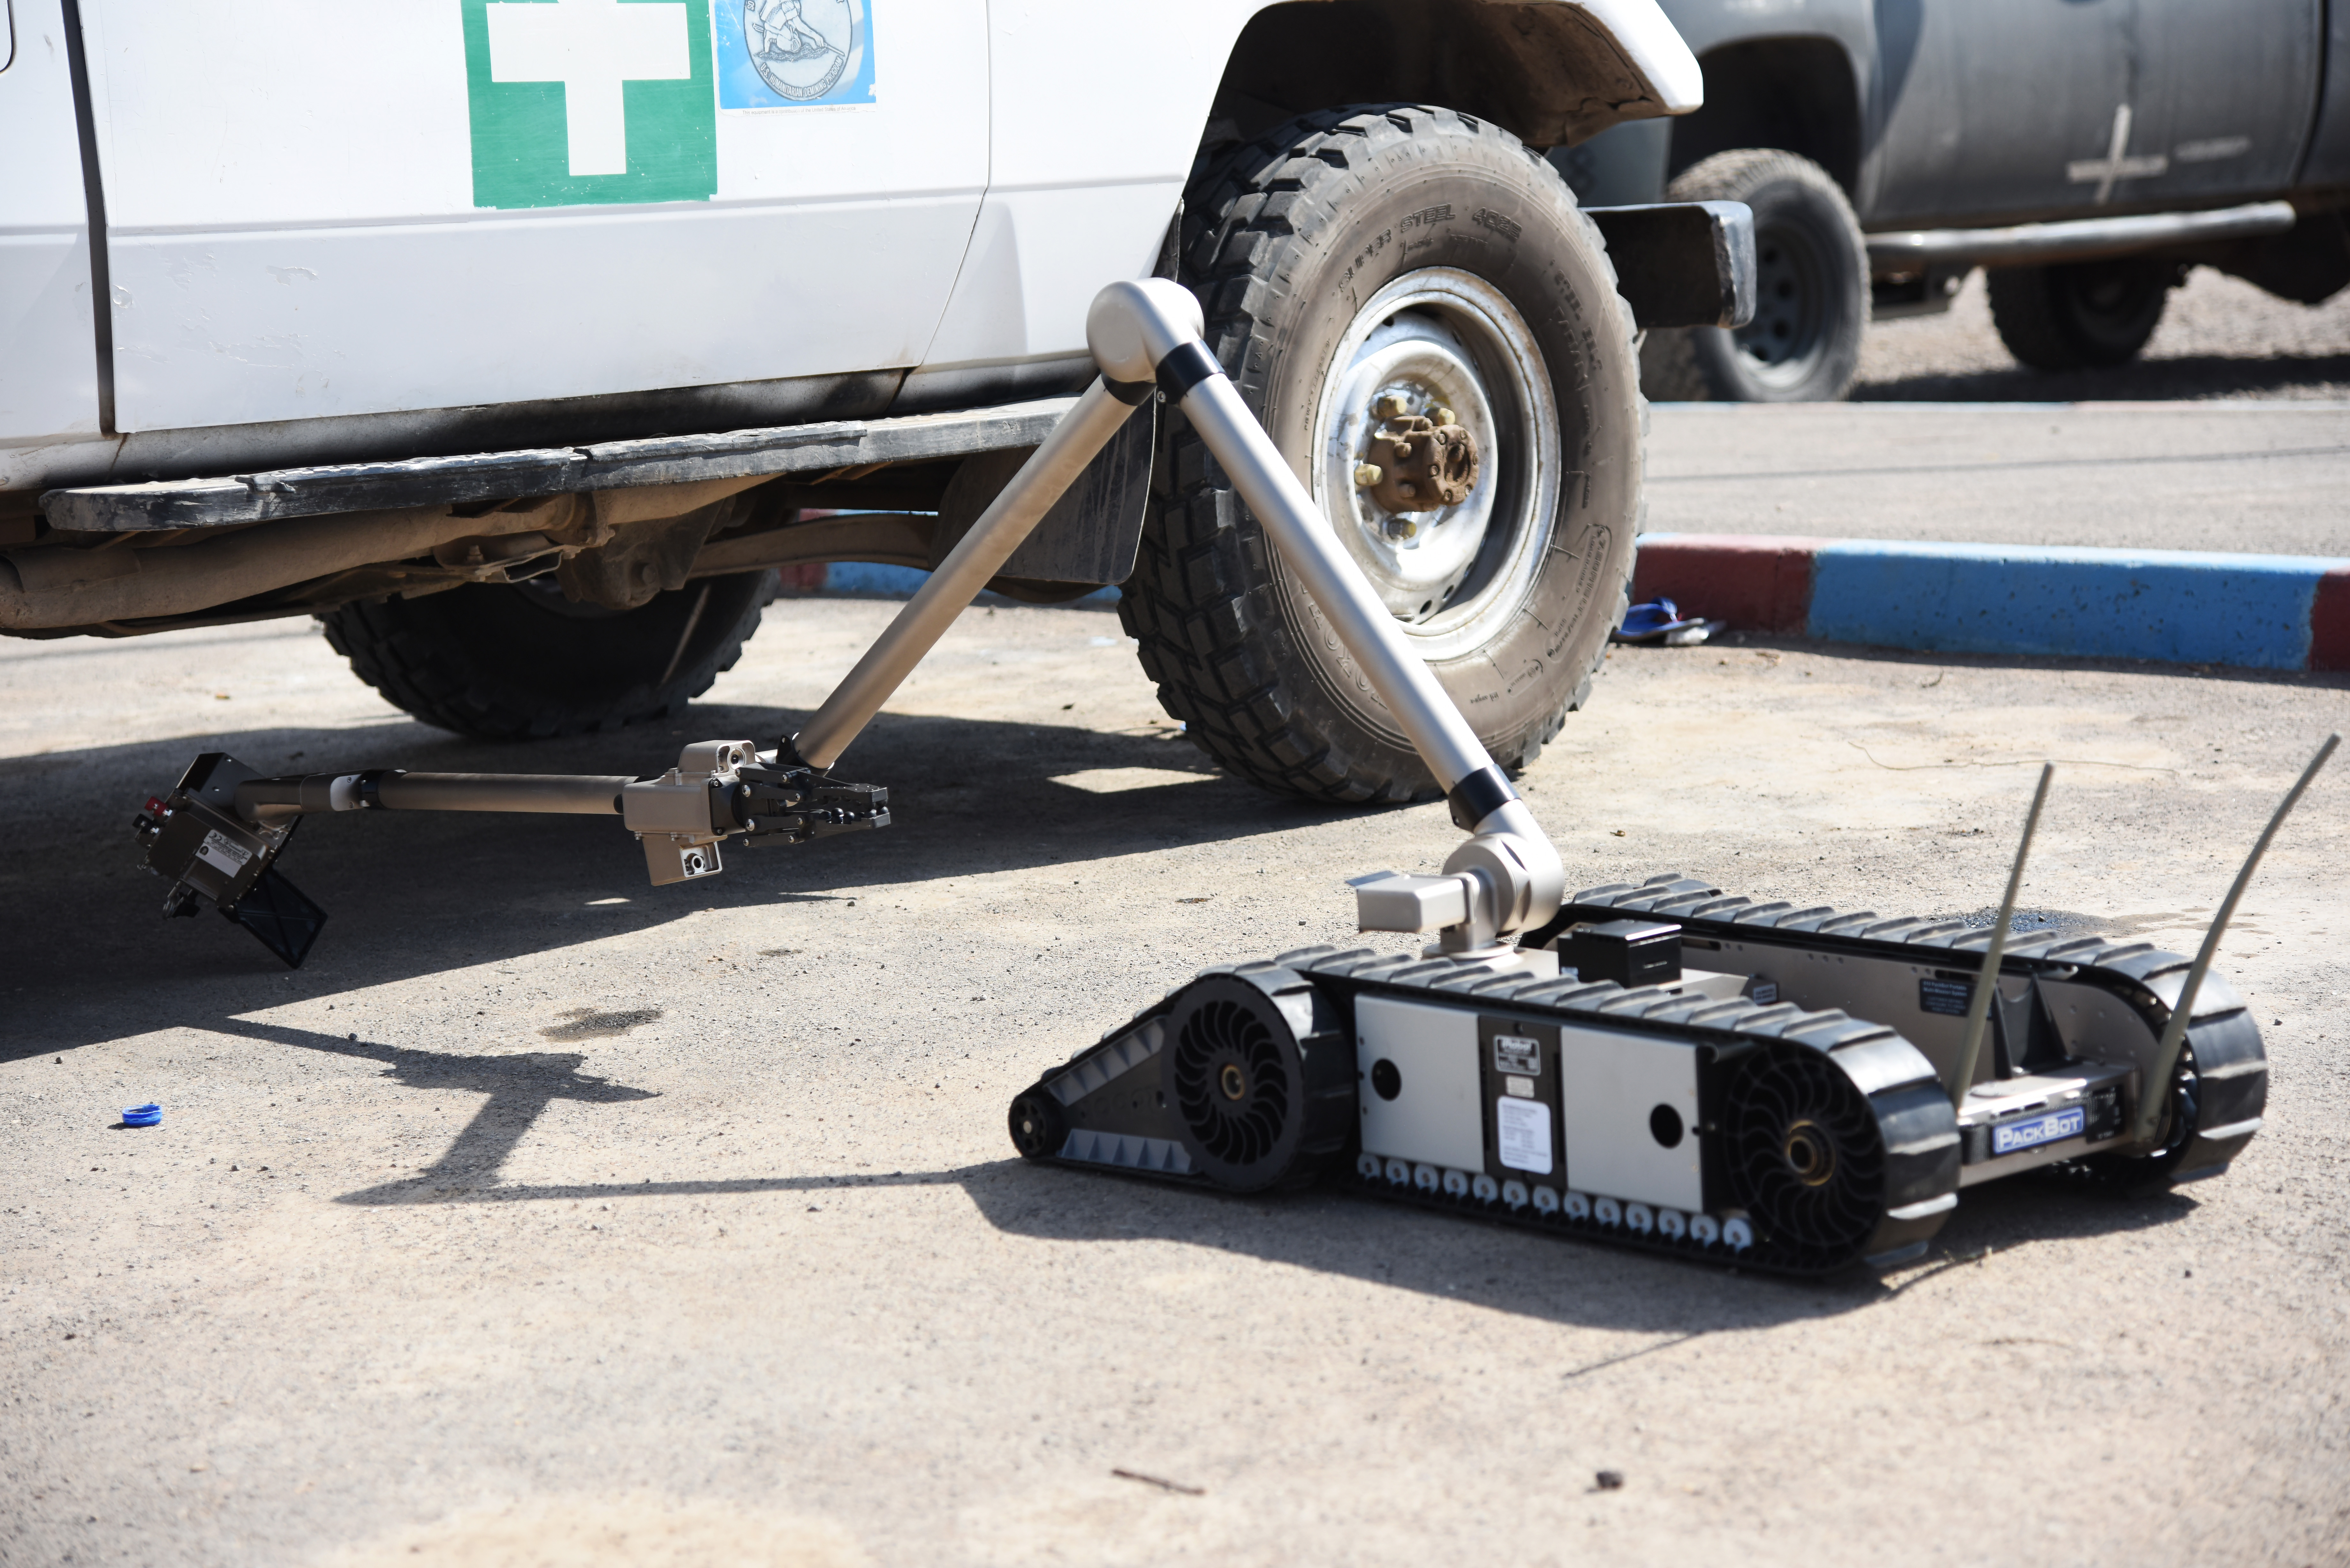 An iRobot 510 Packbot searches for explosive devices under a vehicle during a training course in Djibouti, Oct. 12, 2015. Djibouti Armed Forces (FAD) service members and explosive ordnance disposal technicians assigned at Camp Lemonier learned how to operate the robot. (U.S. Air Force photo by Staff Sgt. Maria Bowman)